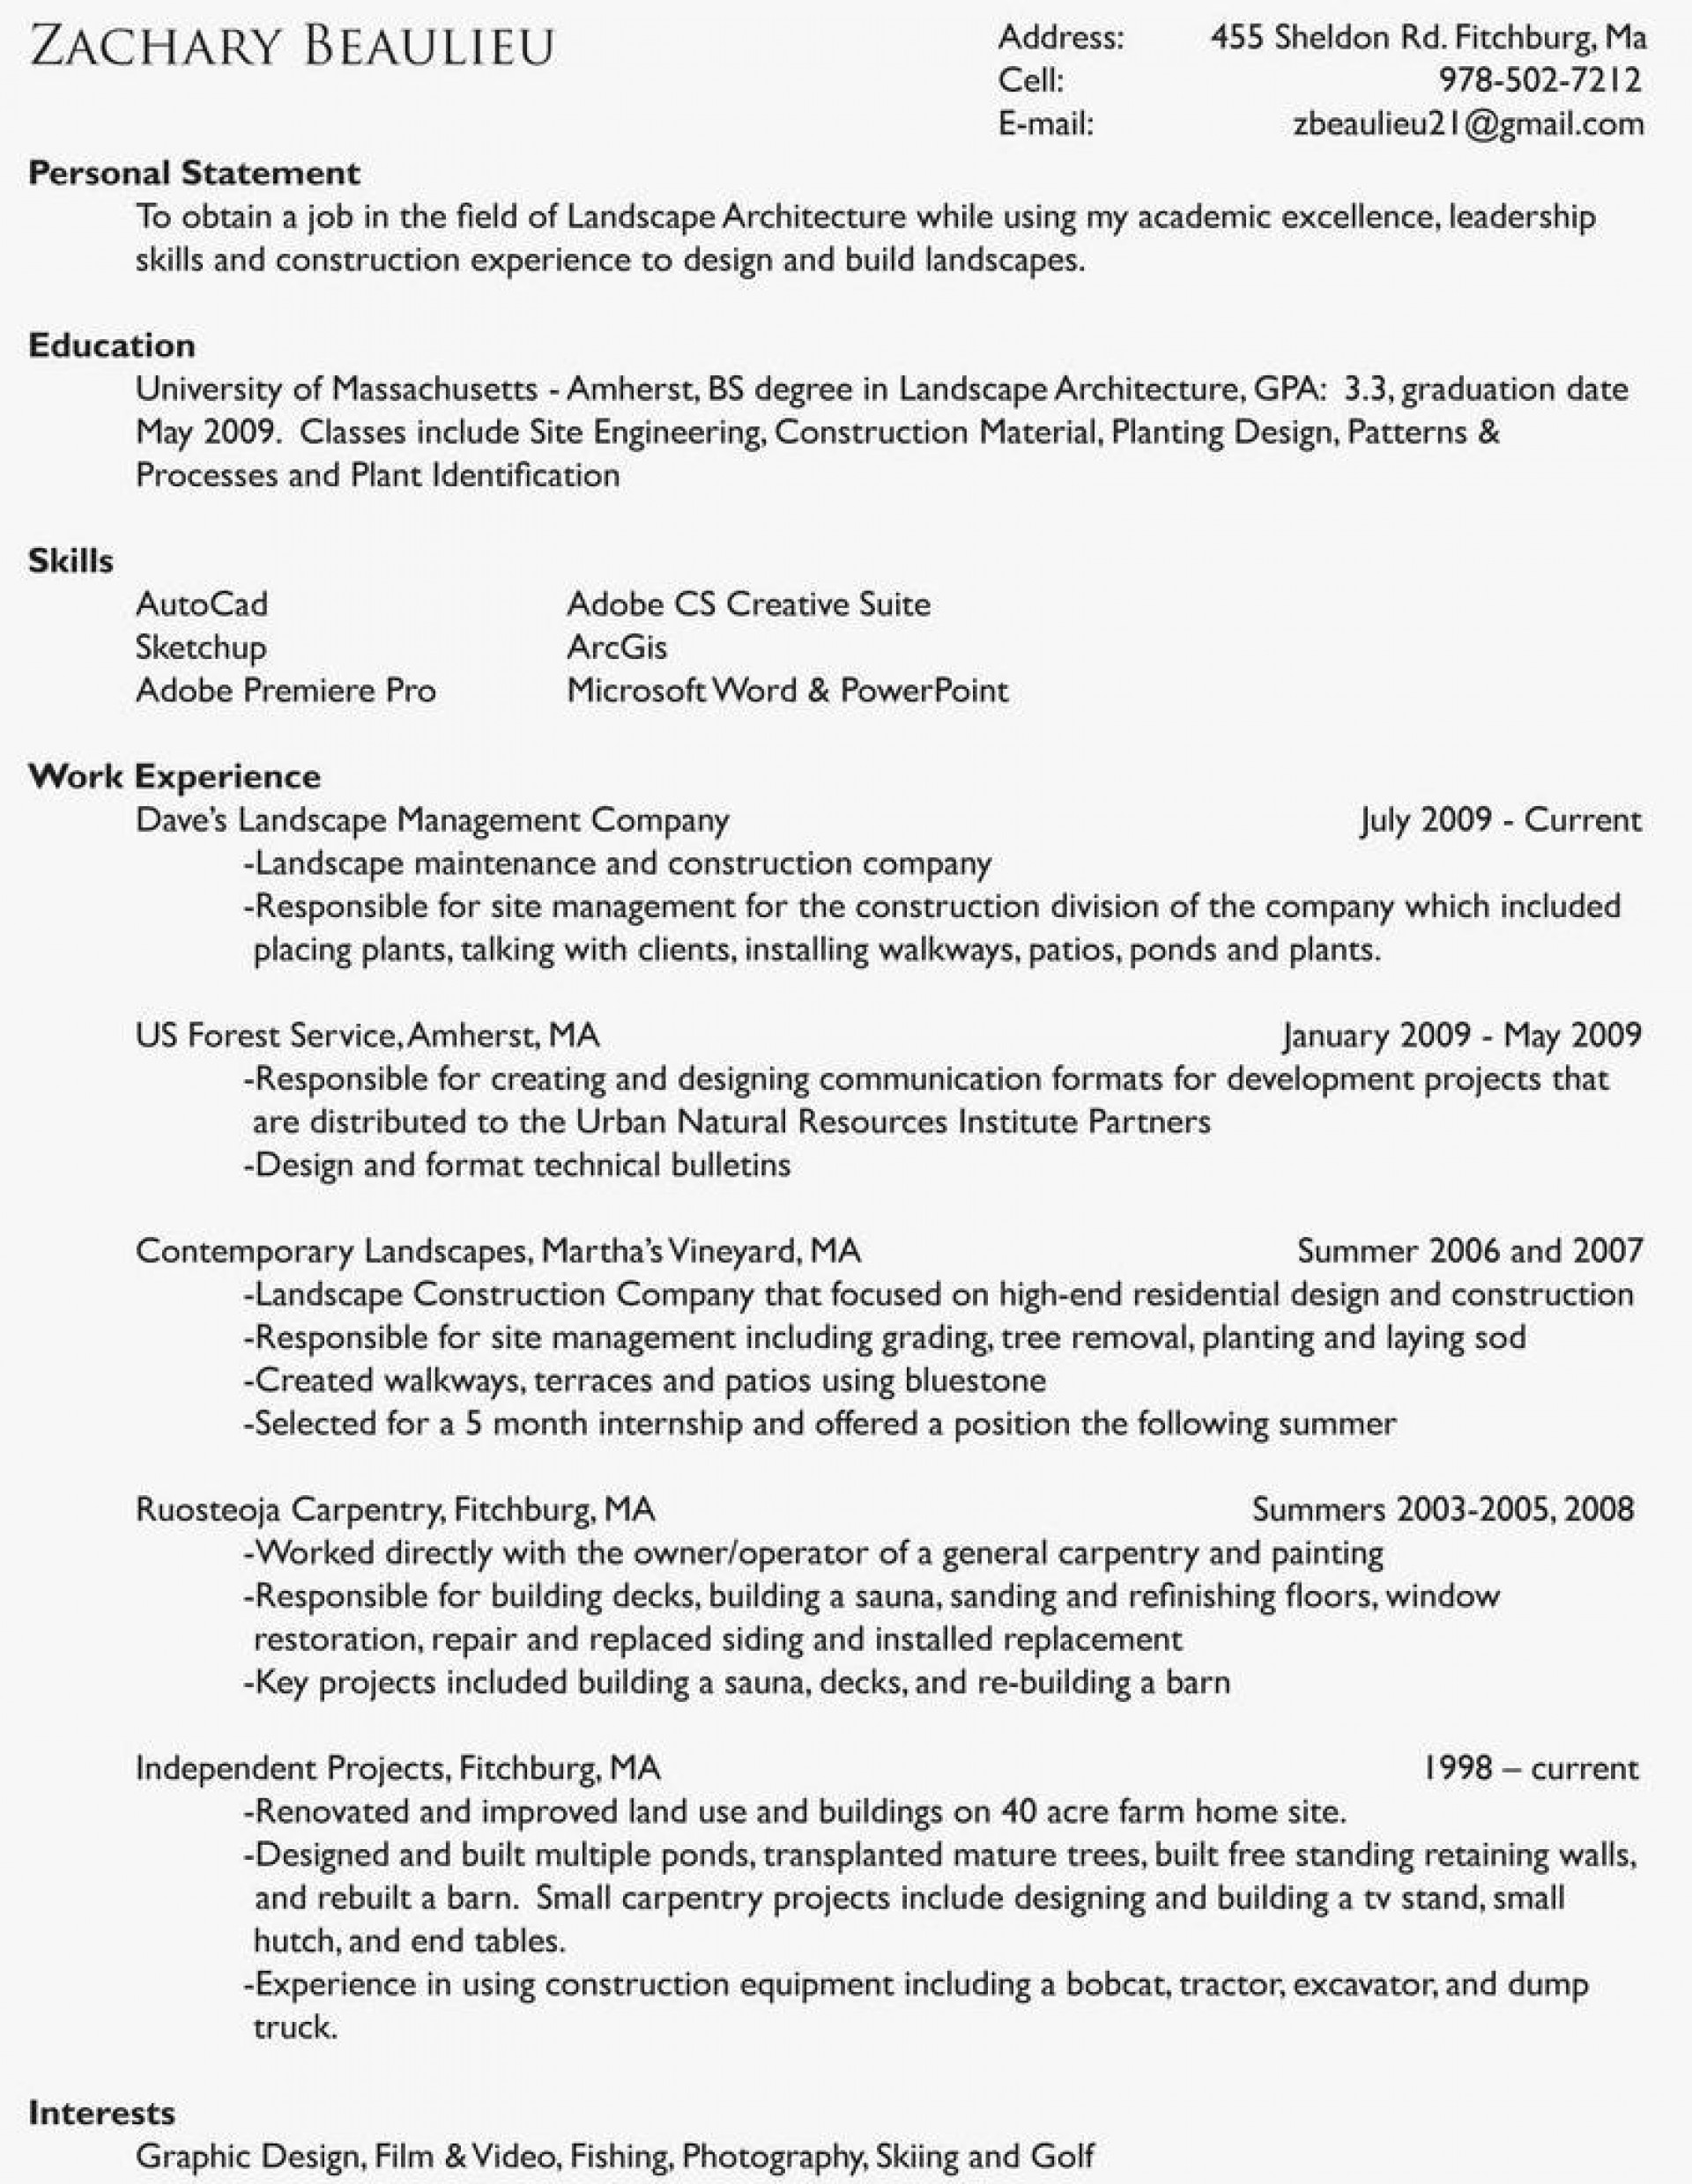 011 Esthetician Resume Skills Inspirational Business Management Essay Topics Writing Service Unethical Of Research Paper Communication Impressive For 1920